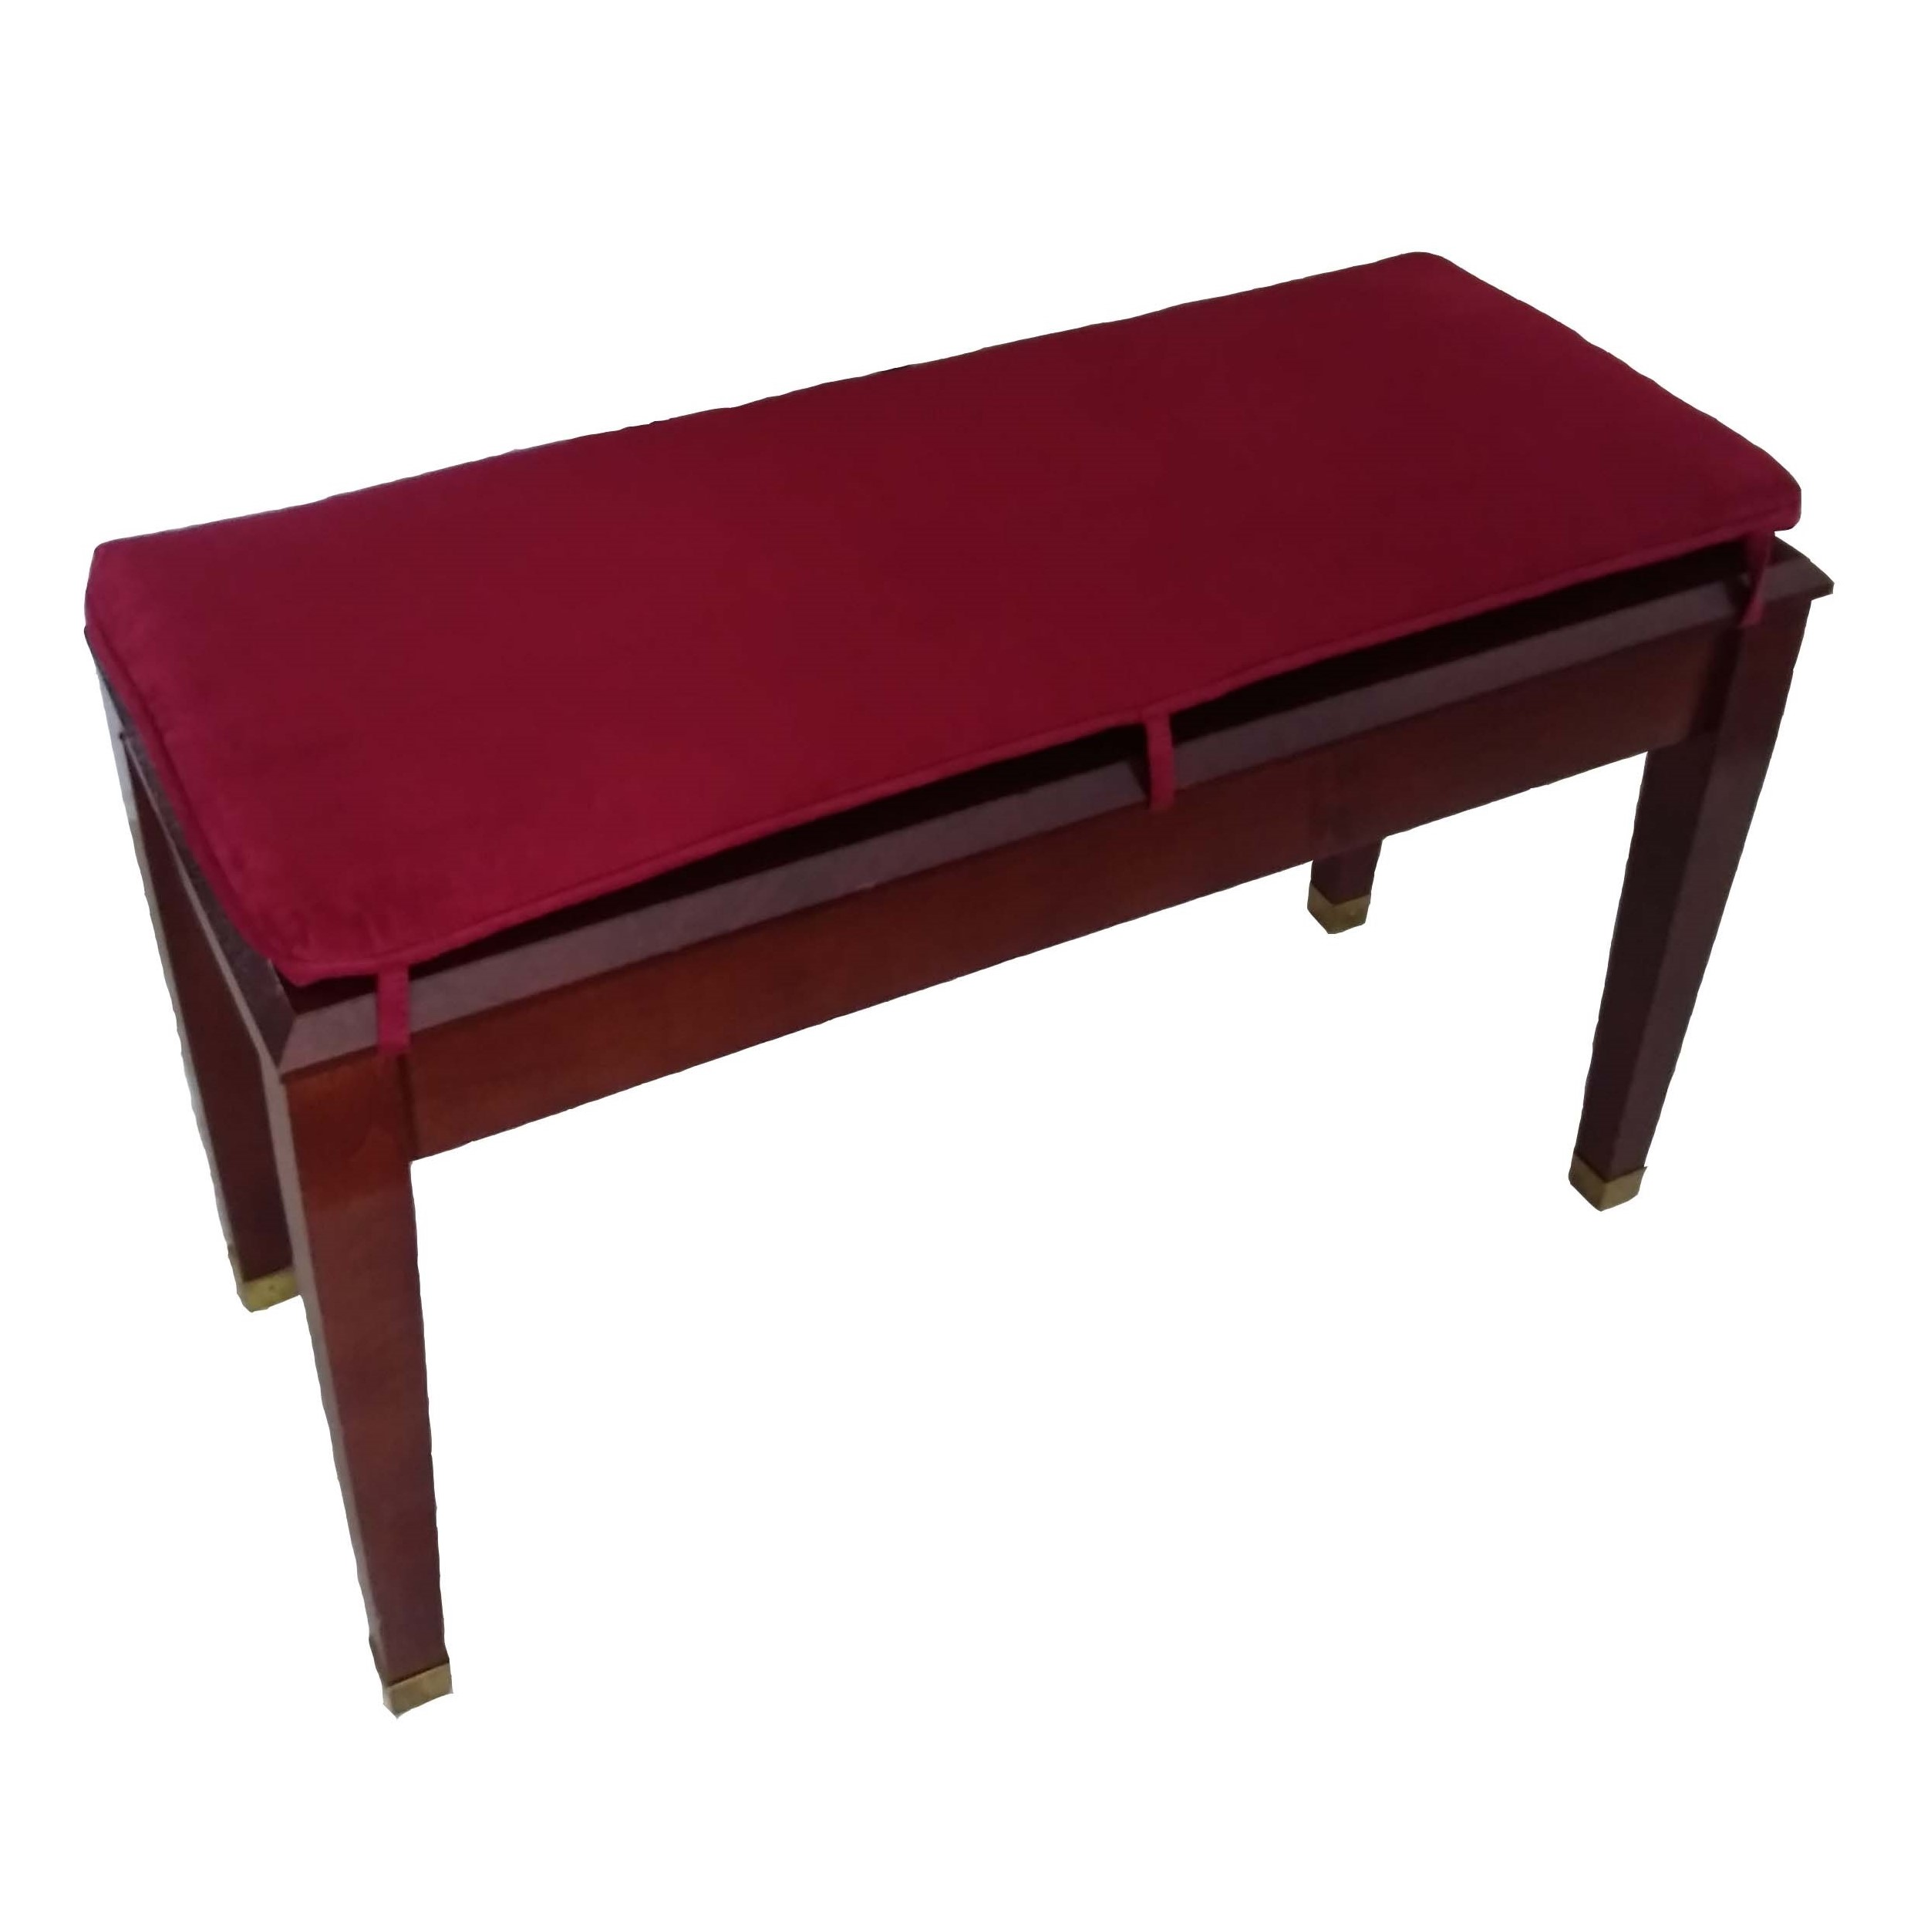 wine-suede-bench.jpg